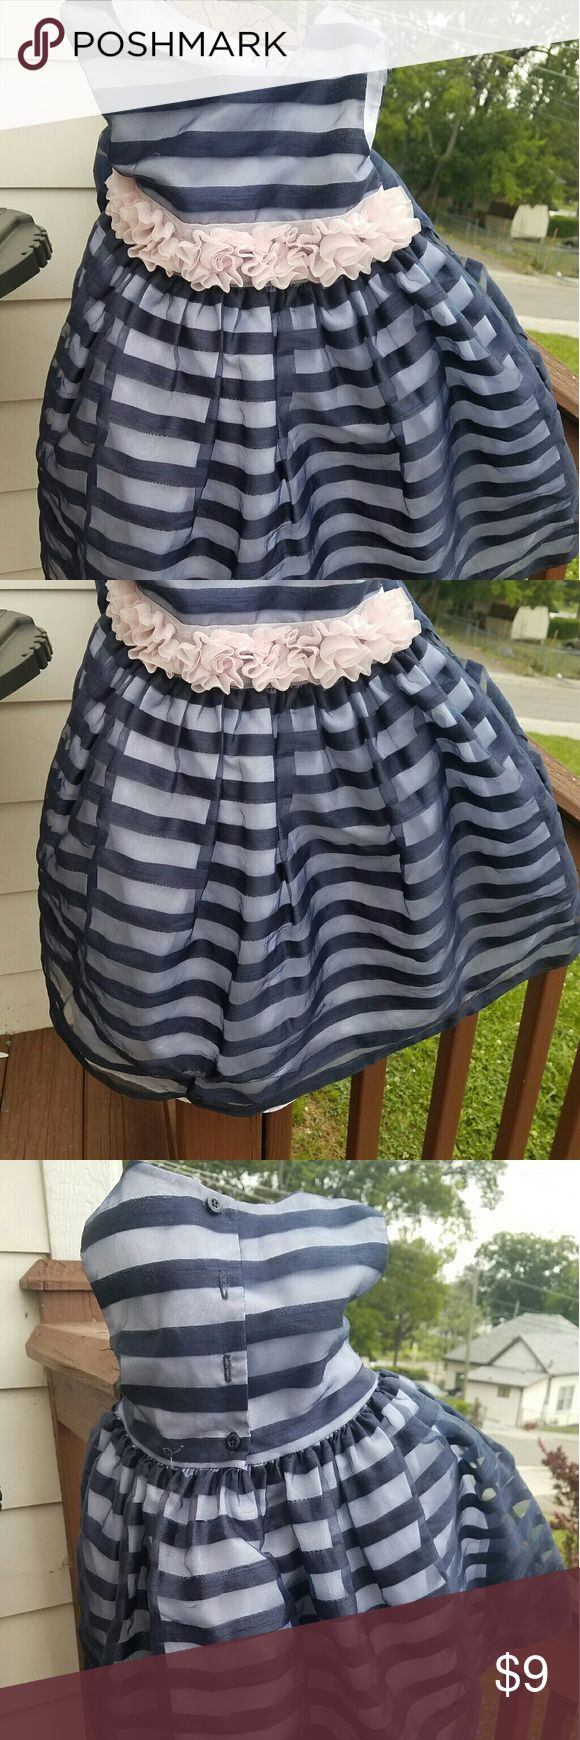 Little Girls Special Occasion Dress Navy and Blush Pink with 1 or 2 barely noticeable nicks Dresses Formal